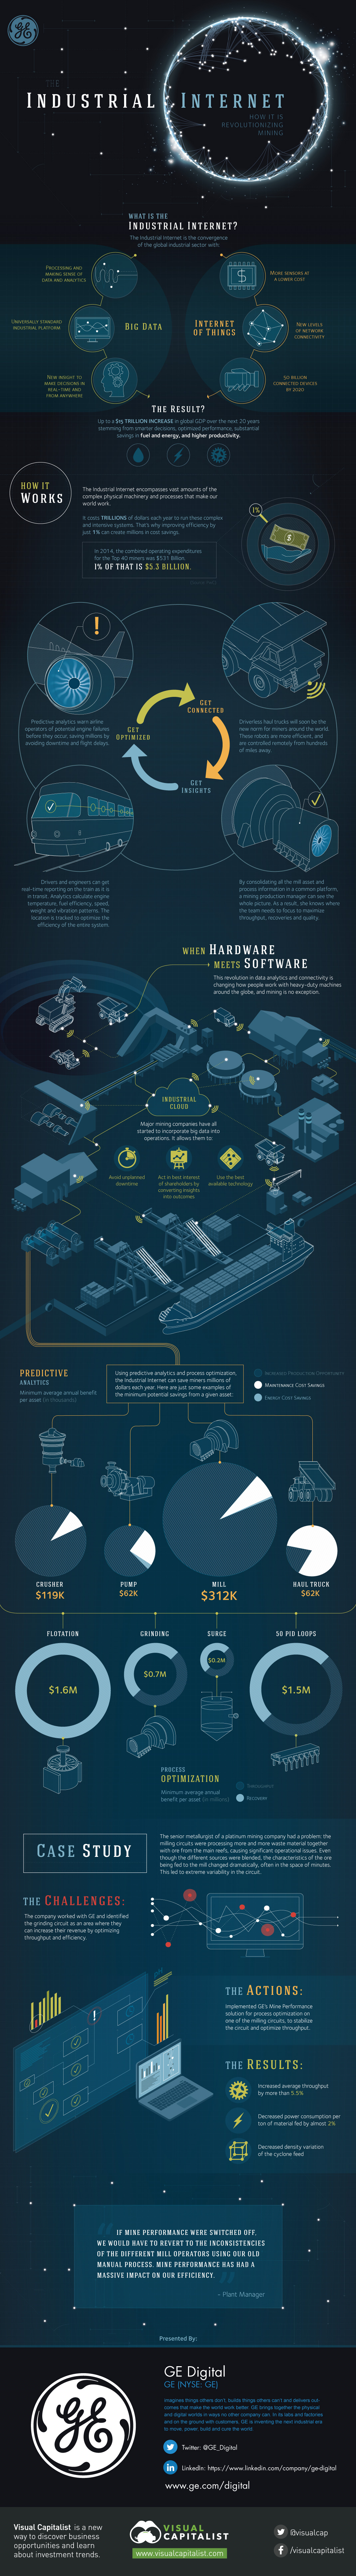 How the Industrial Internet is Revolutionizing the Mining Industry